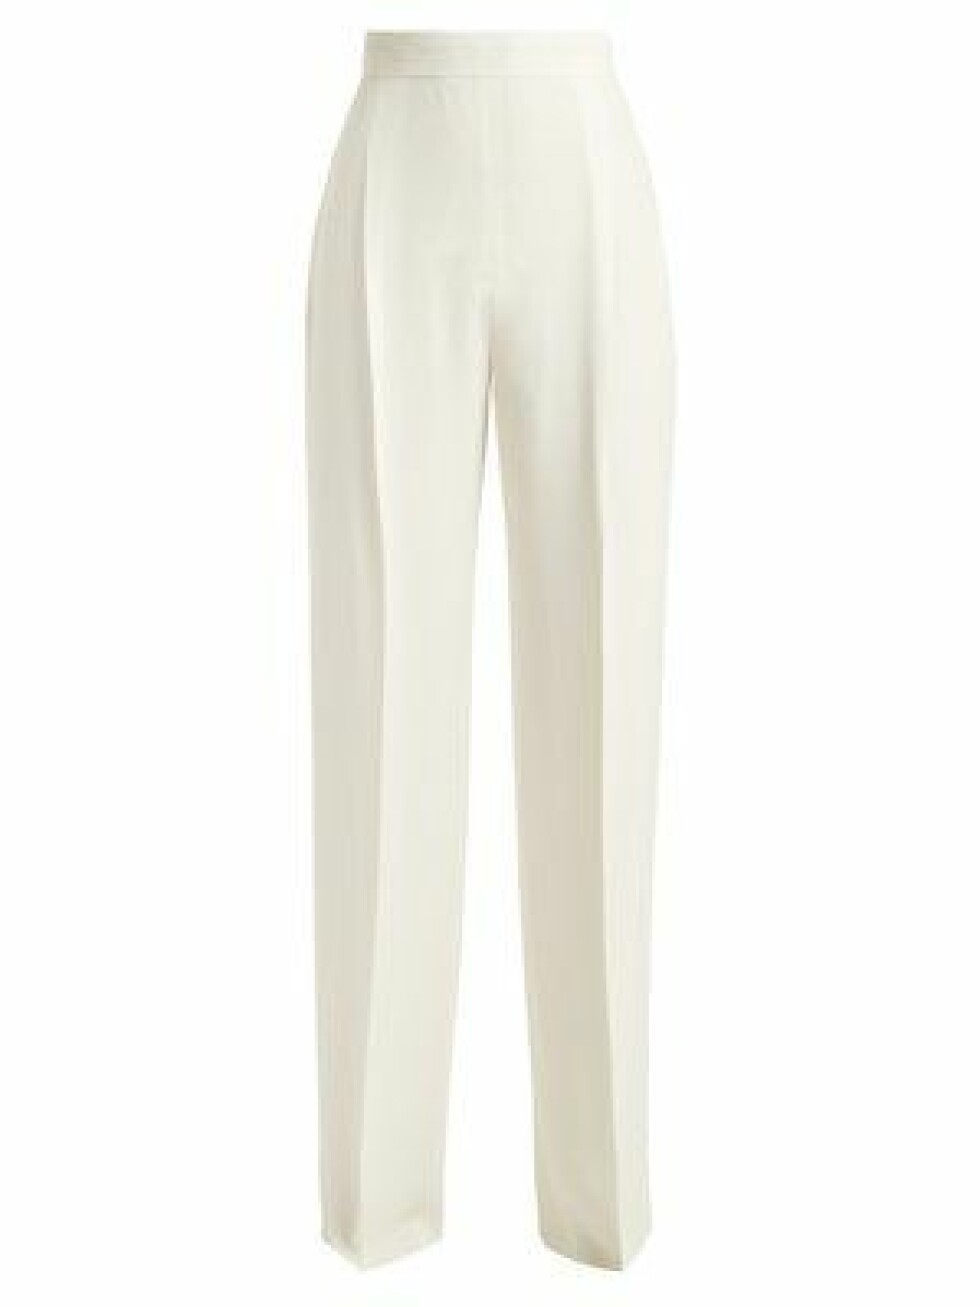 Bukse fra Max Mara |2635,-| https://www.matchesfashion.com/intl/products/Max-Mara-Dixi-trousers-1211720